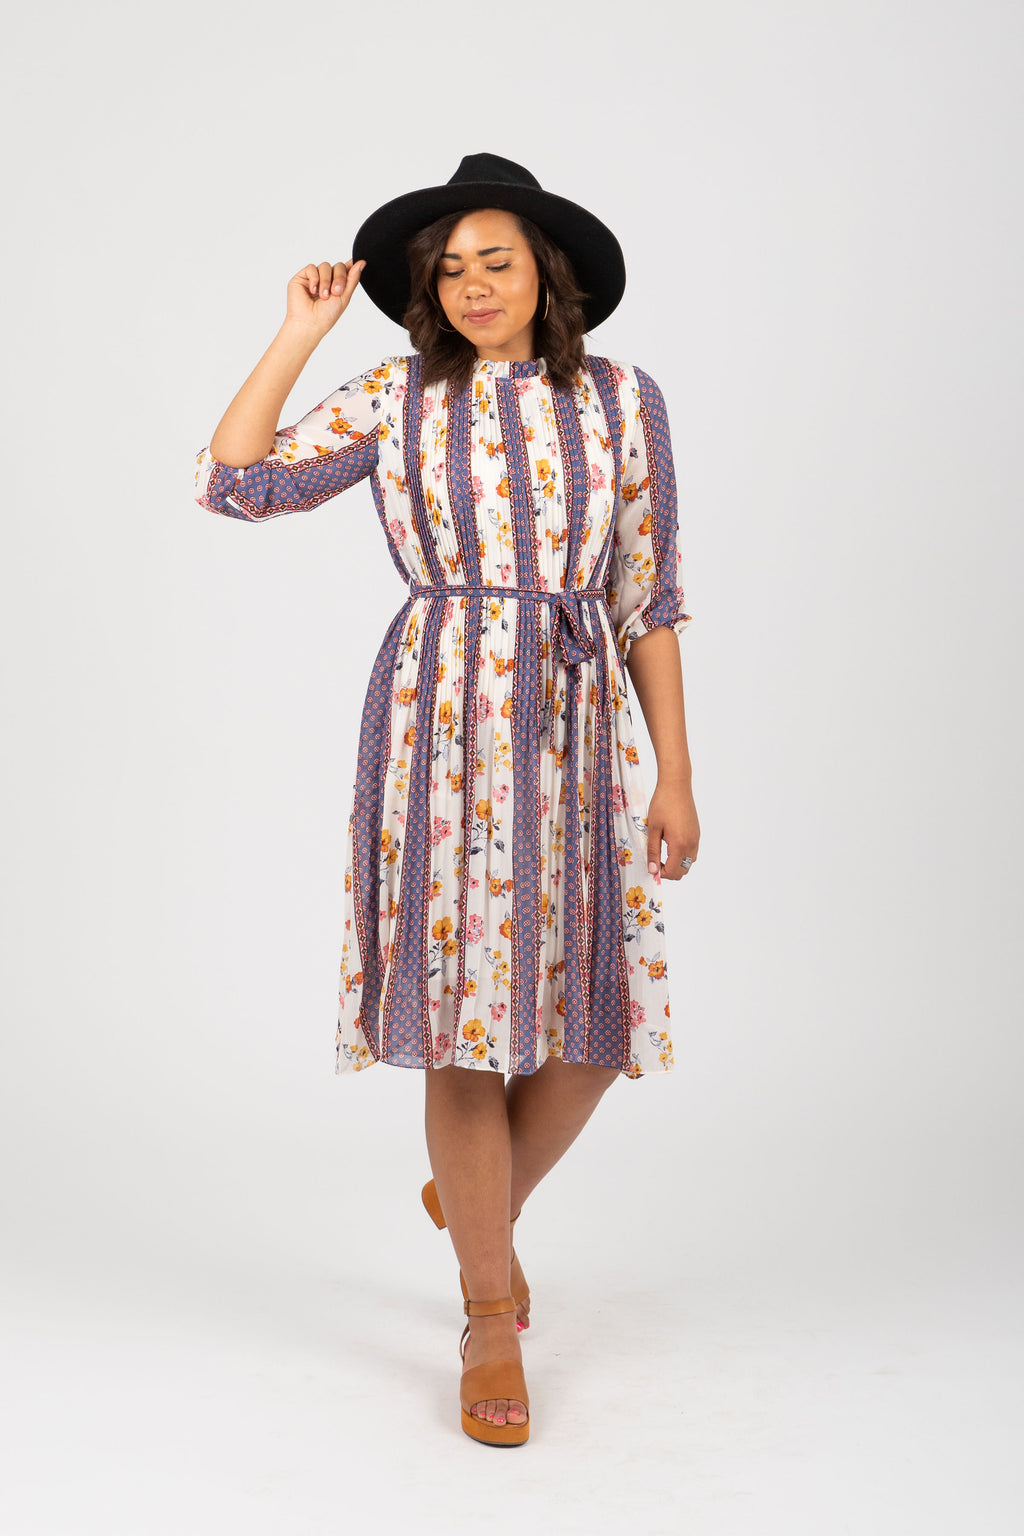 The Sketch Floral Striped Dress in Multi